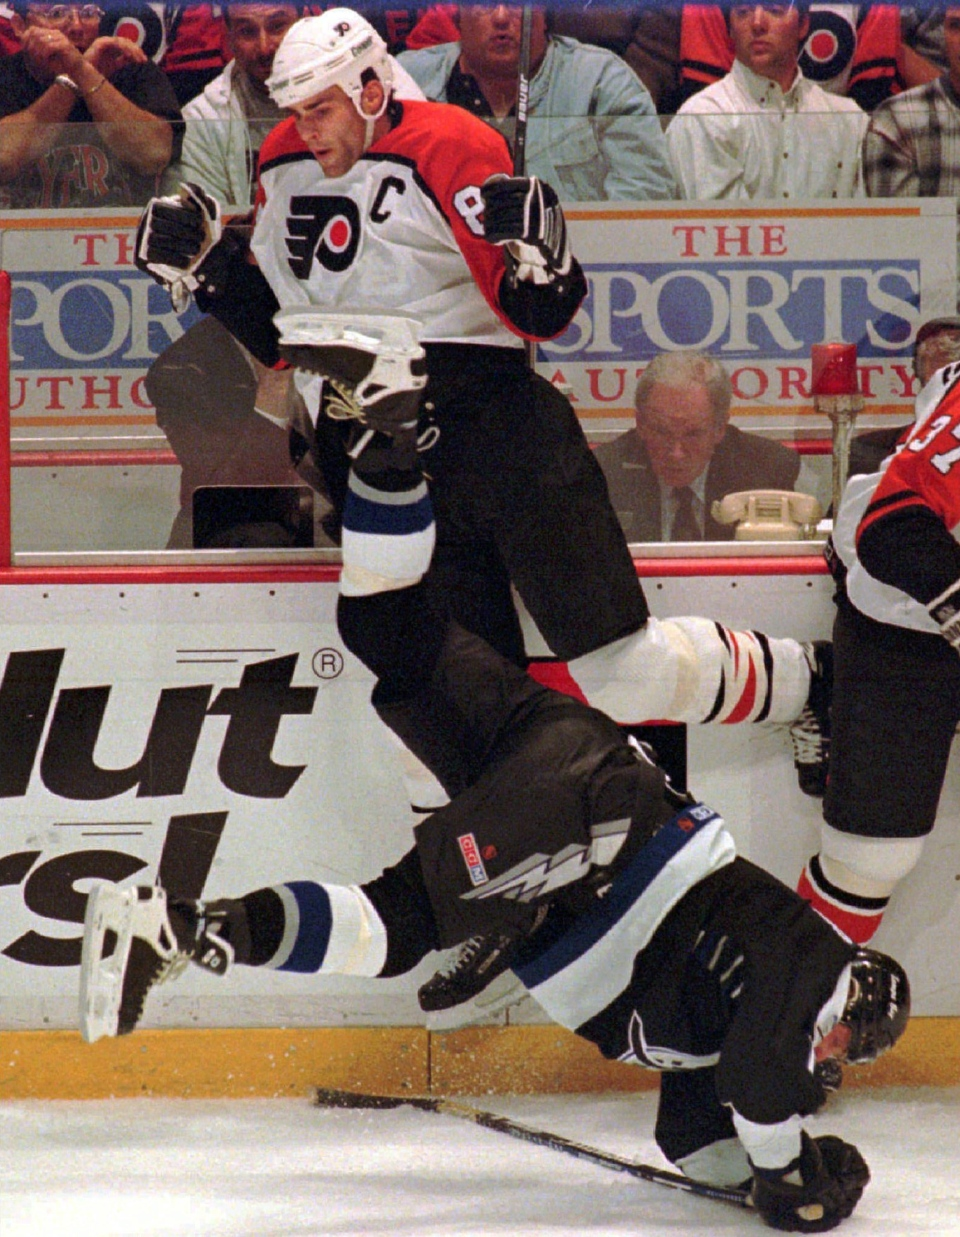 Philadelphia Flyers Eric Lindros, top centre, and Tampa Bay Lightning Shawn Burr are topsy-turvy against the boards in the first period of Game 5 of the Stanley Cup playoff round in Philadelphia on Thursday, April 26, 1996. (AP / Rusty Kennedy)